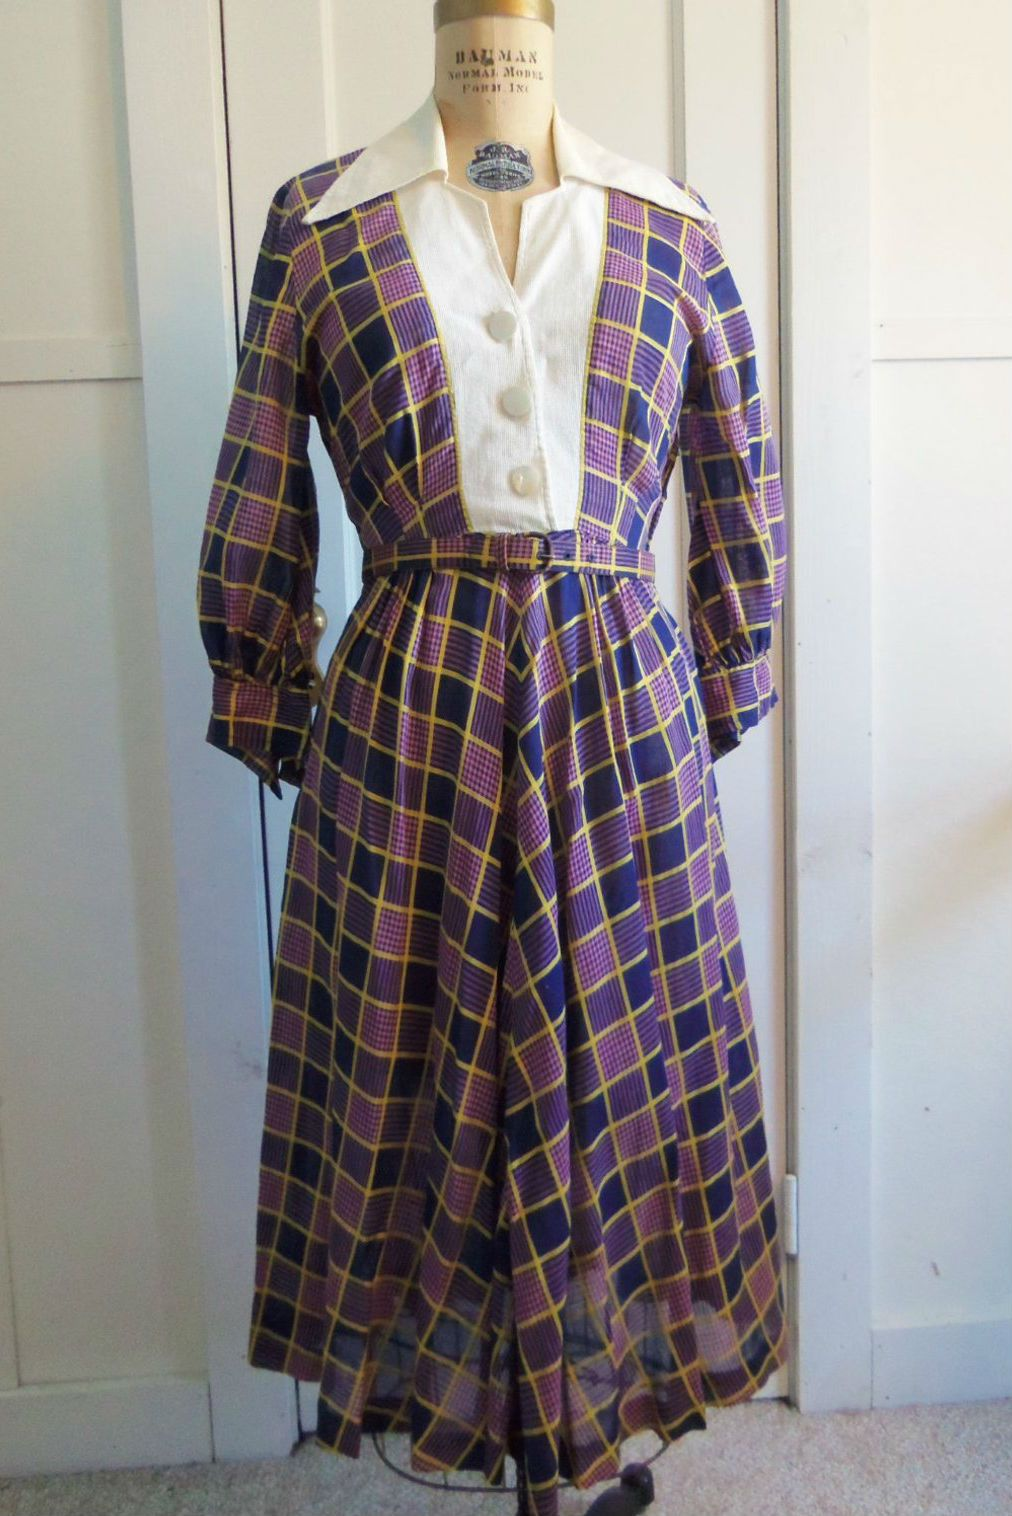 A purple checked dress on a dress form in front of a white door.